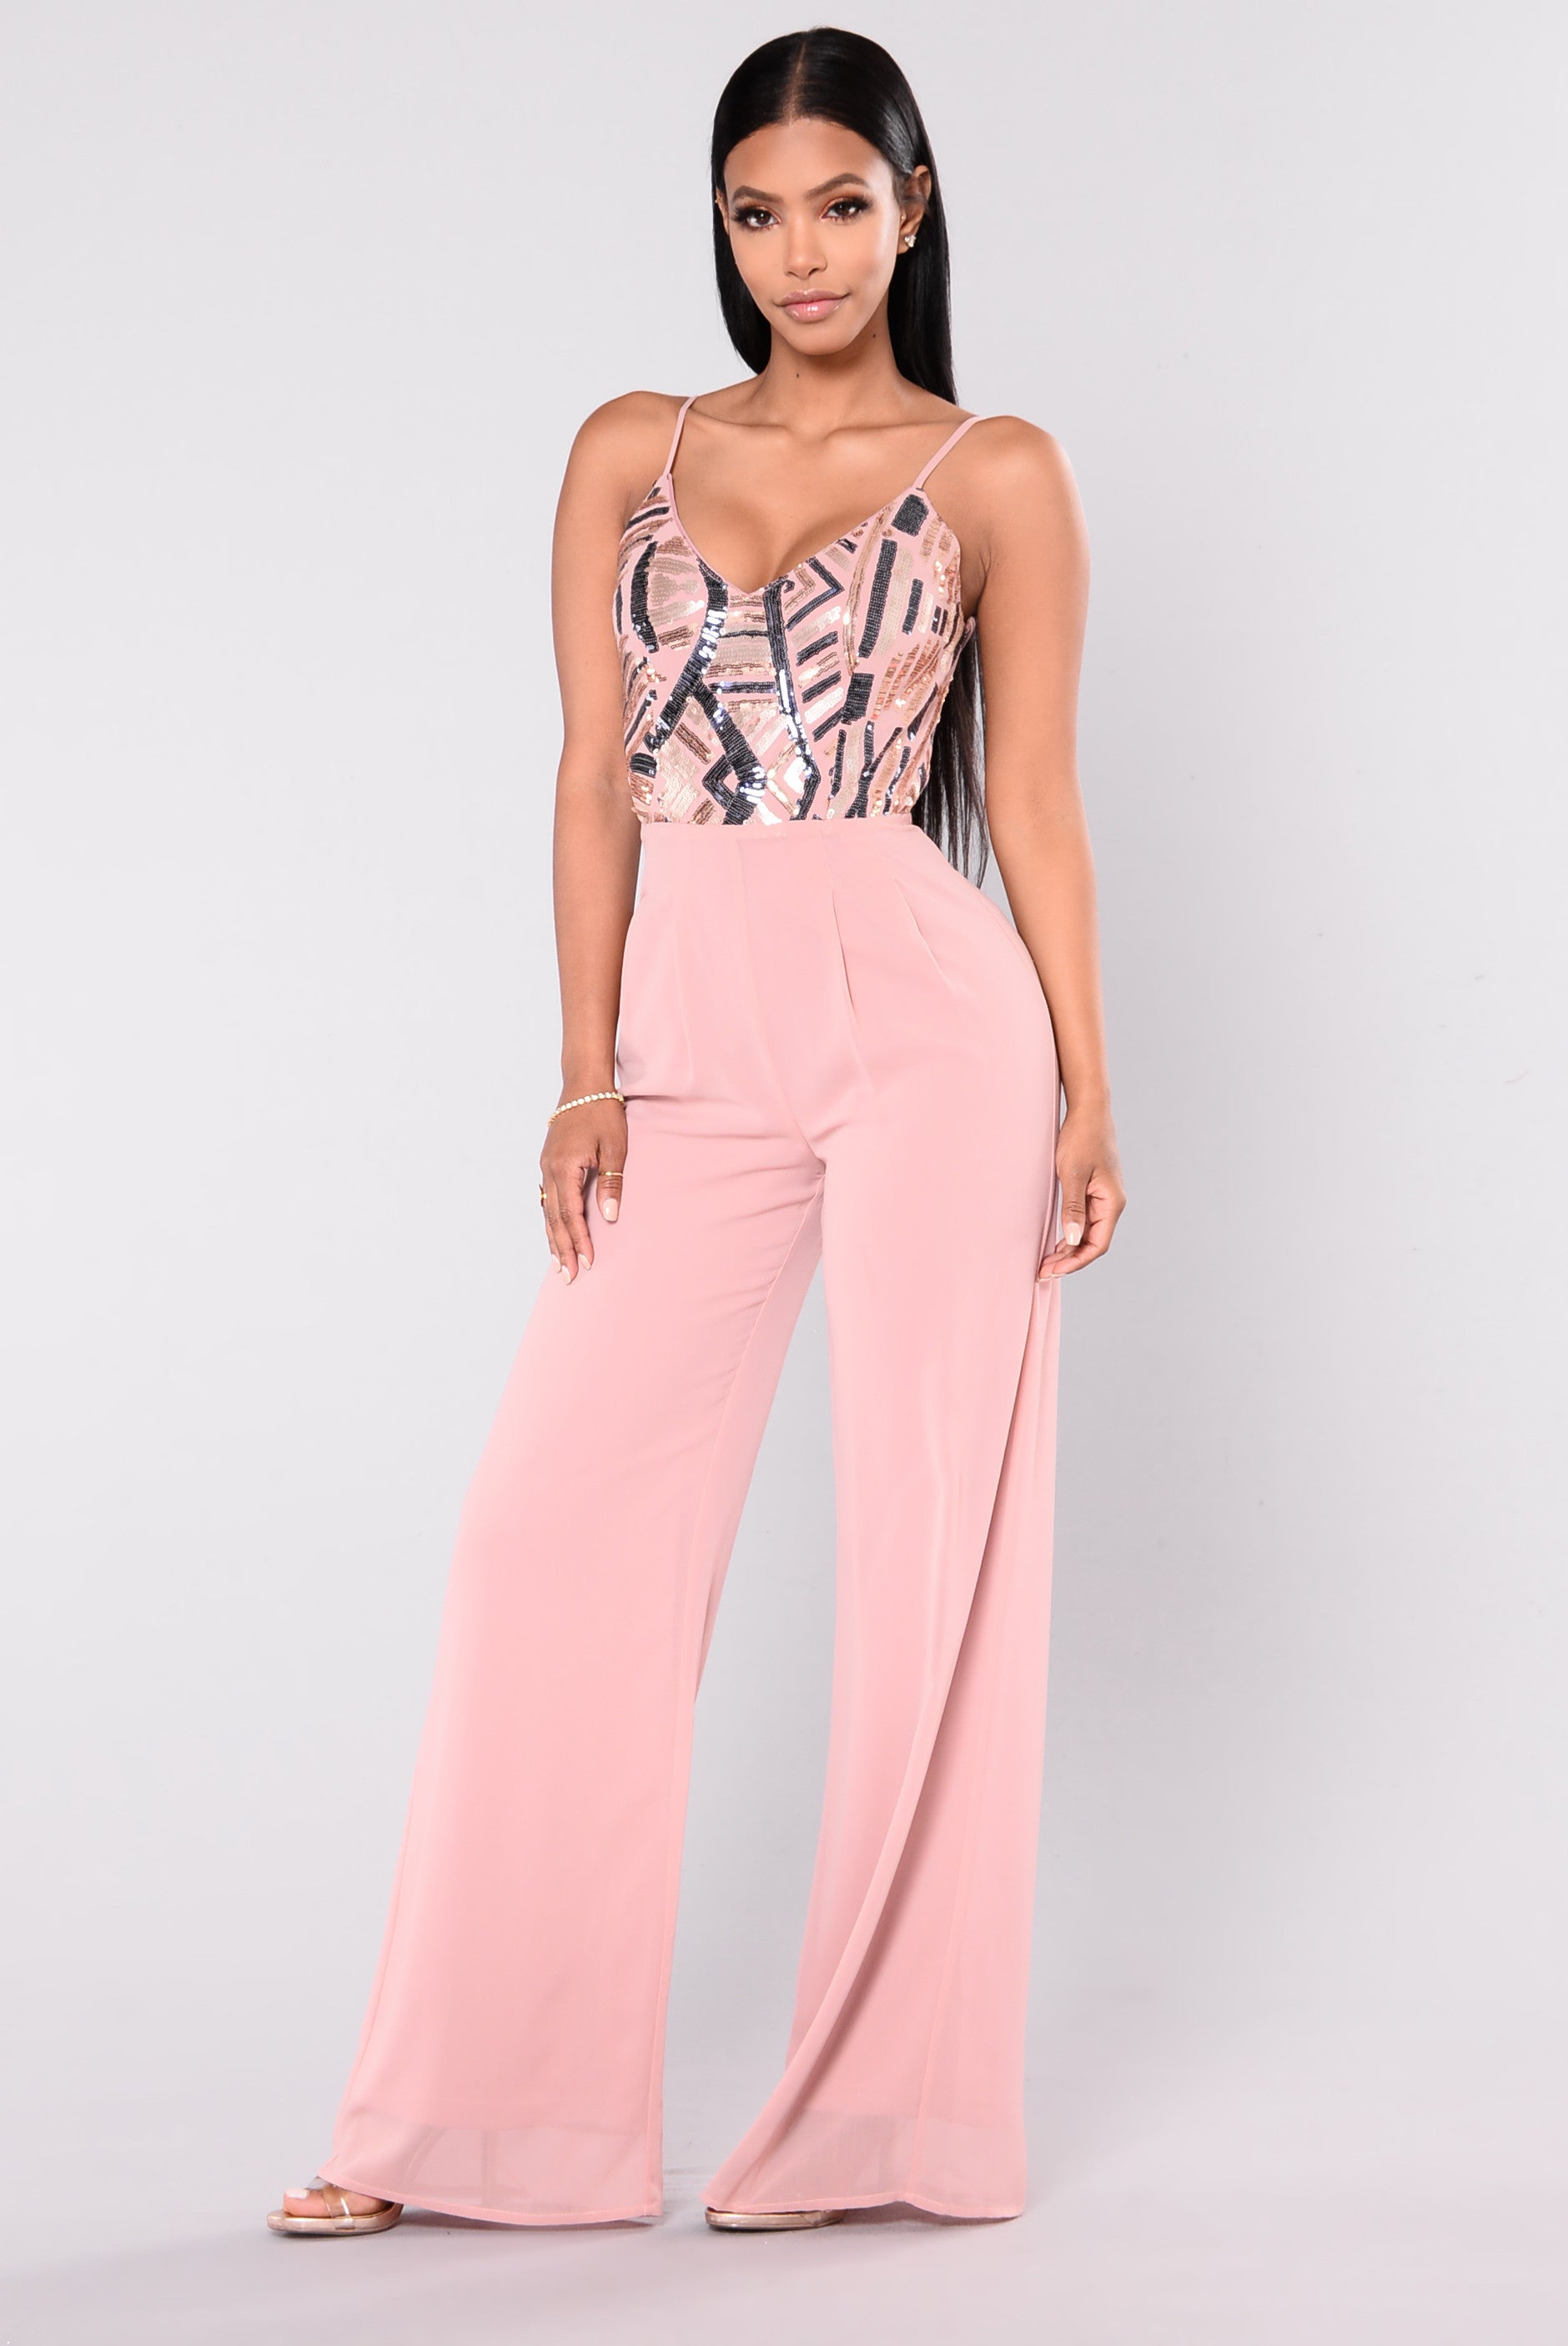 Fashionably Late Sequin Jumpsuit Pink